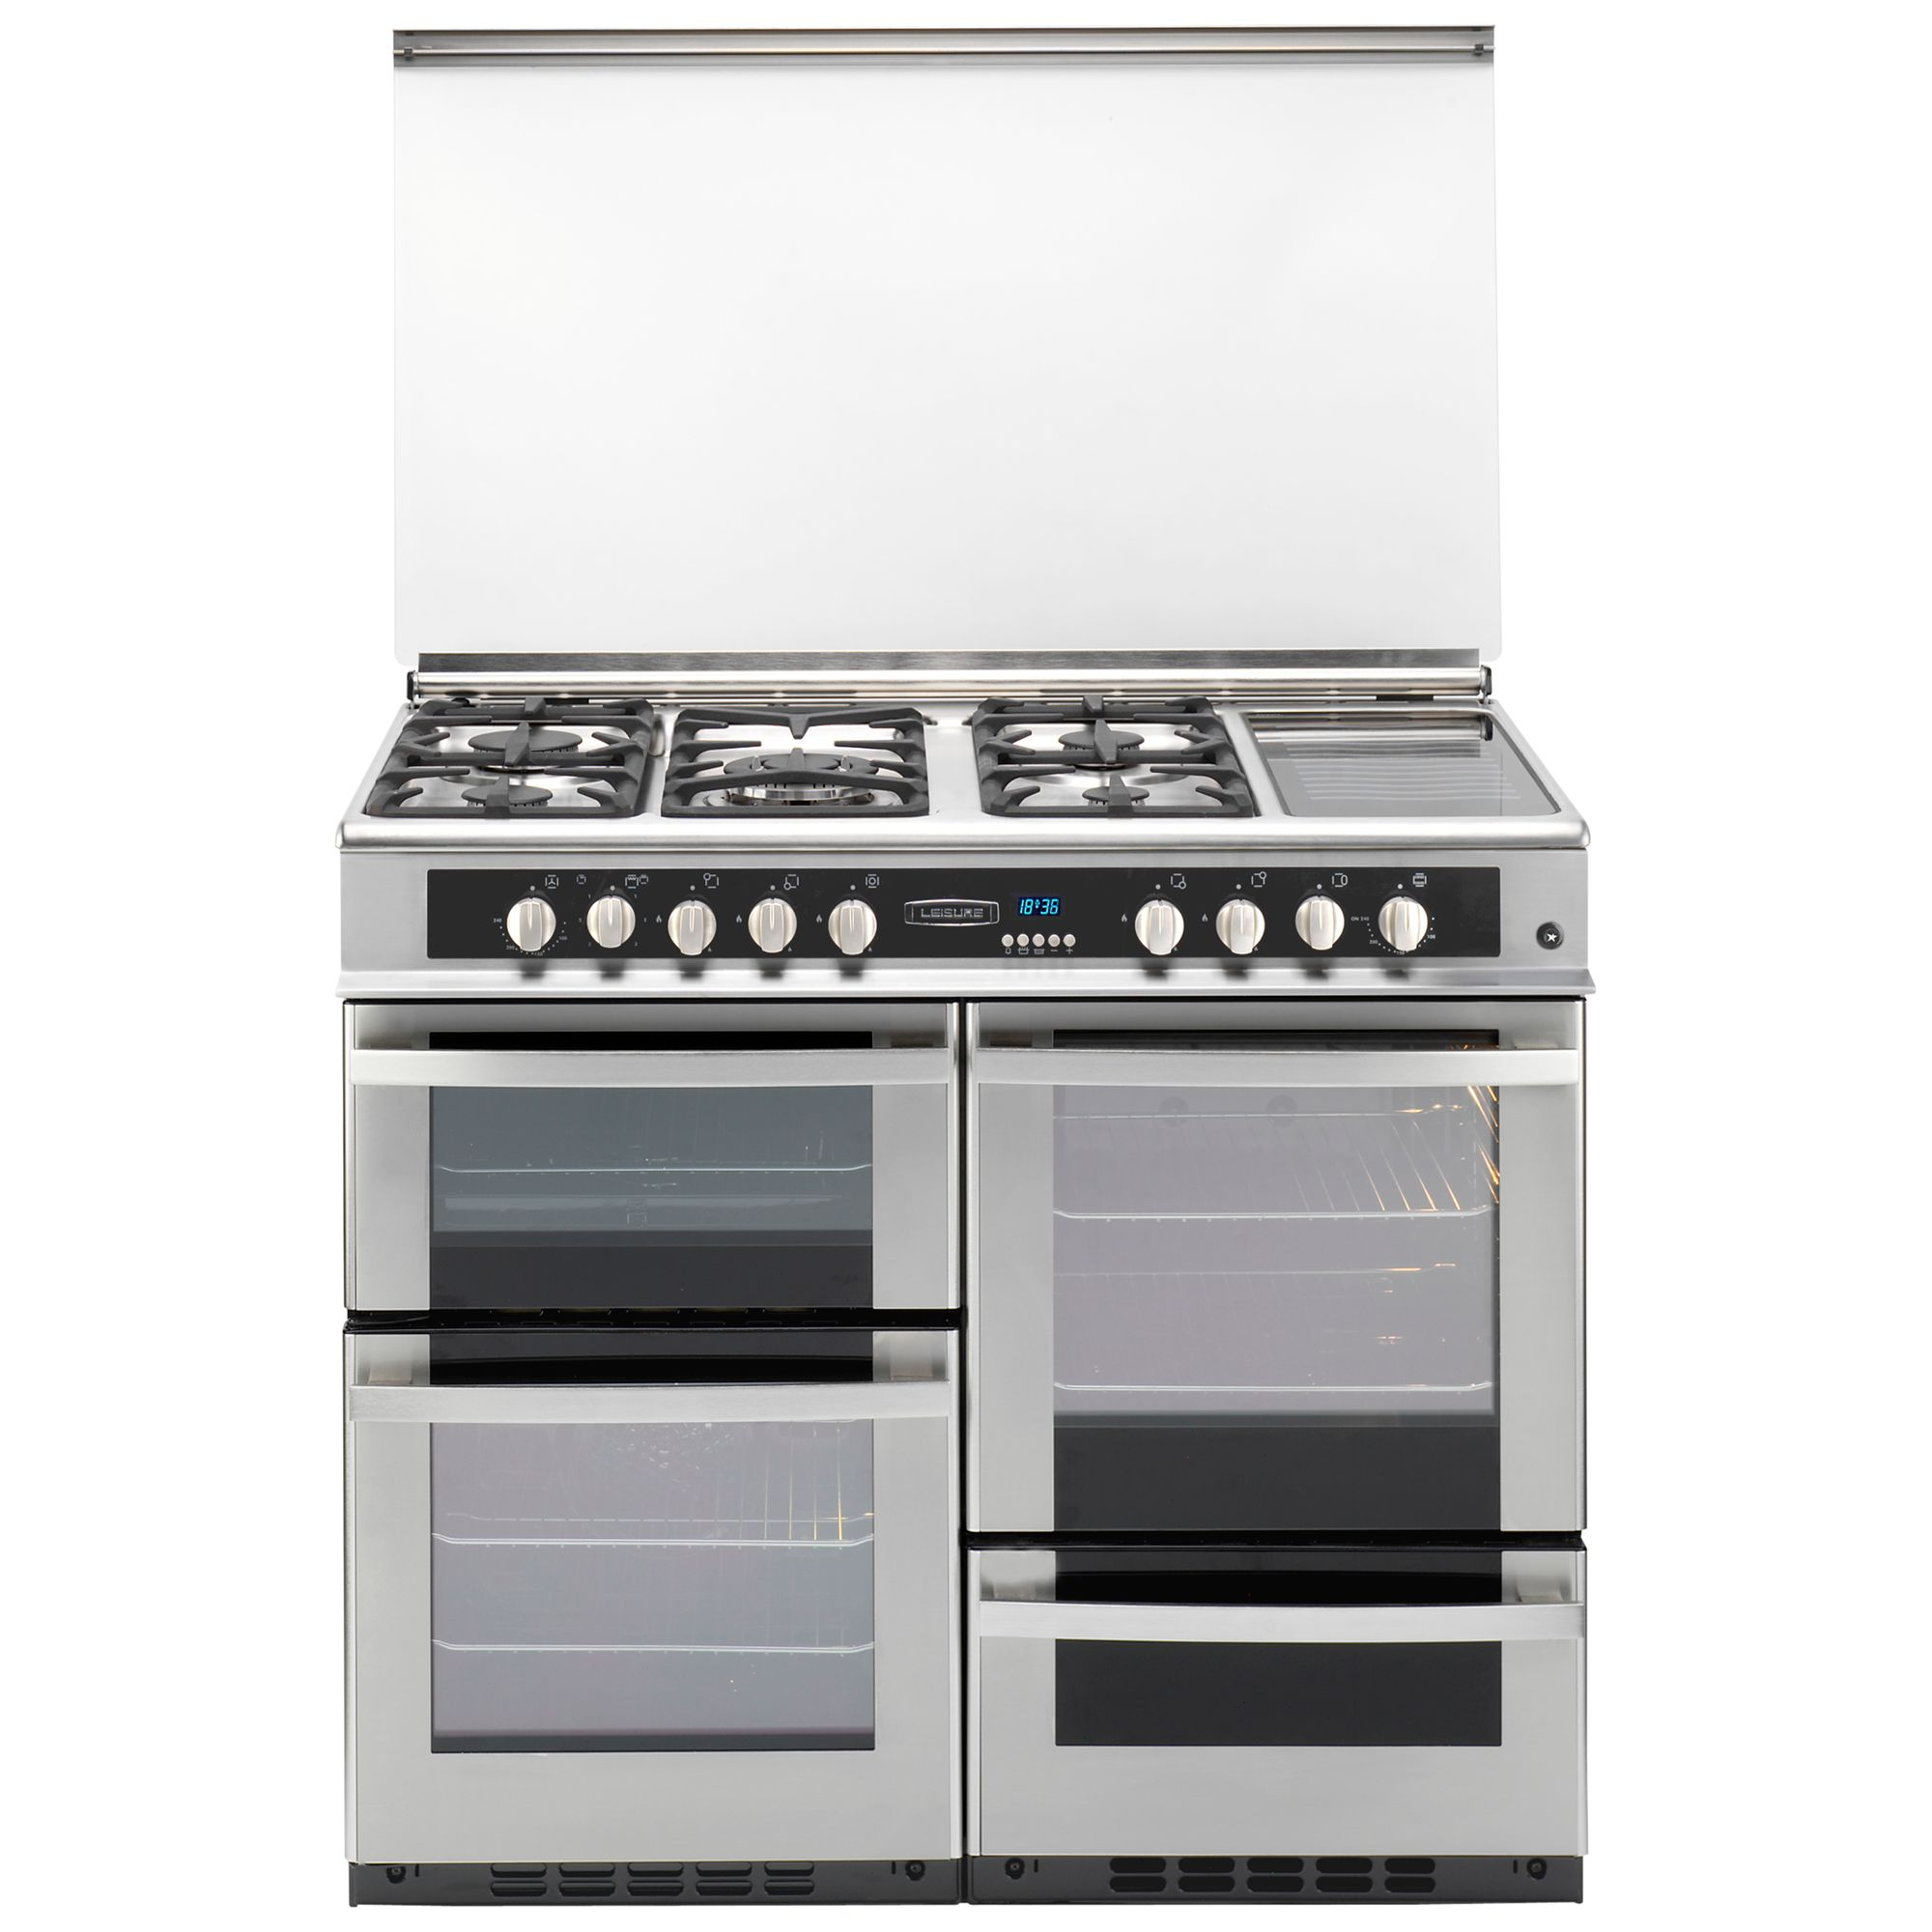 Cheap Leisure Range Cooker Best Uk Deals On Cookers